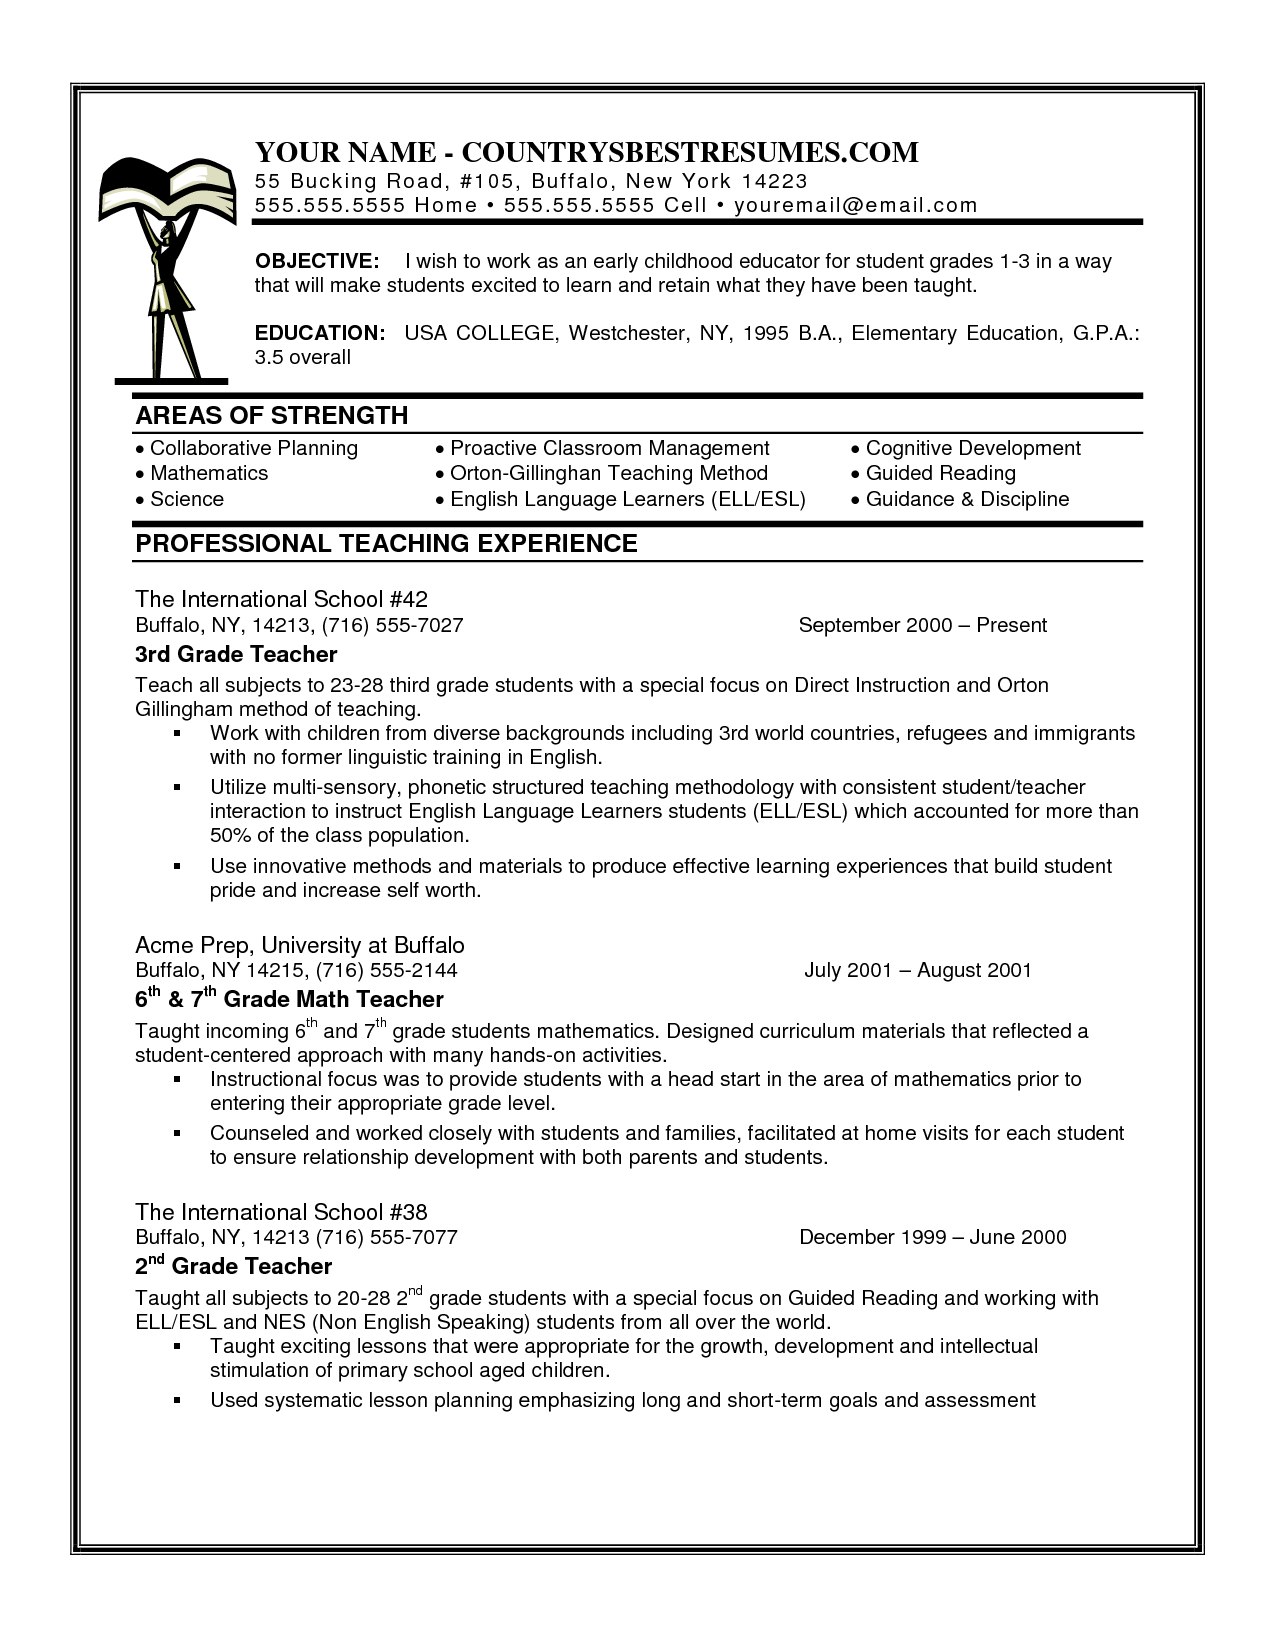 Middle School Resume Sample Resumes For Middle School Principals Mmim8kzn Png